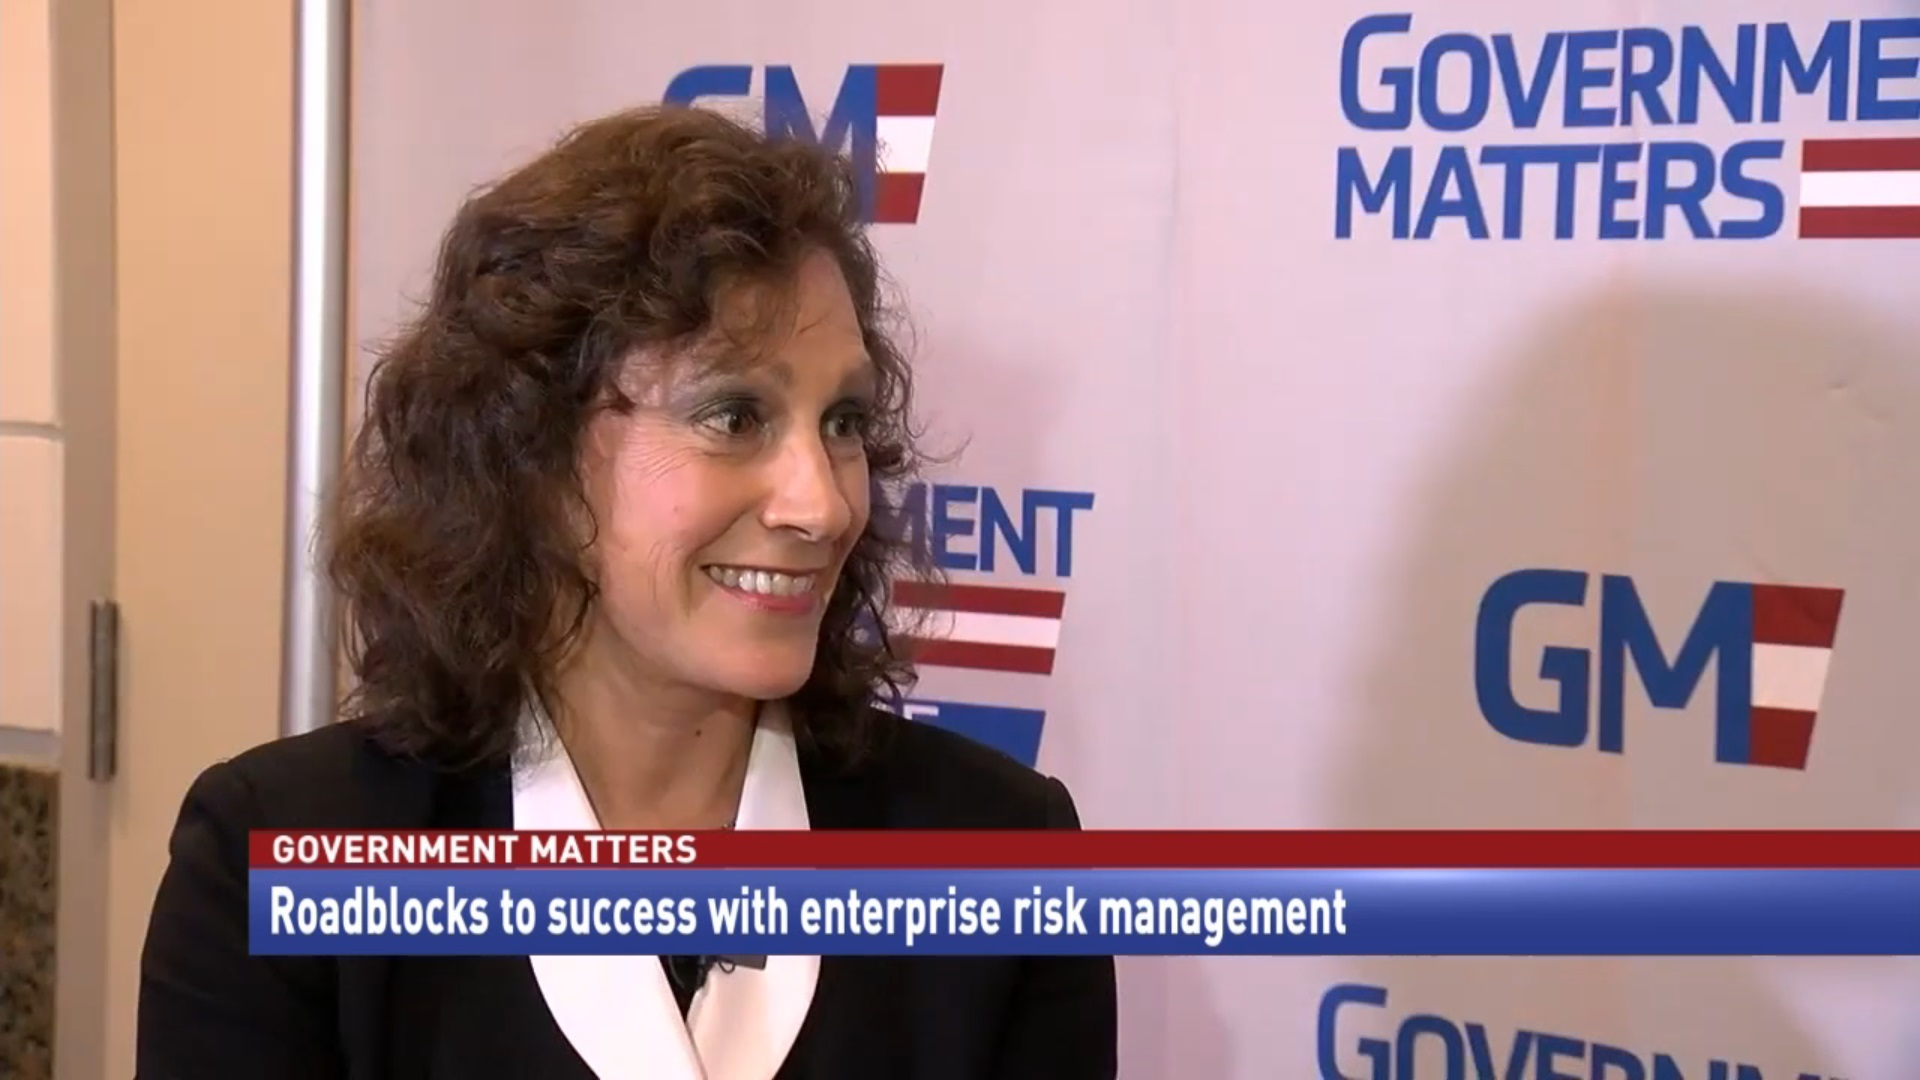 Impact of agency culture on enterprise risk management